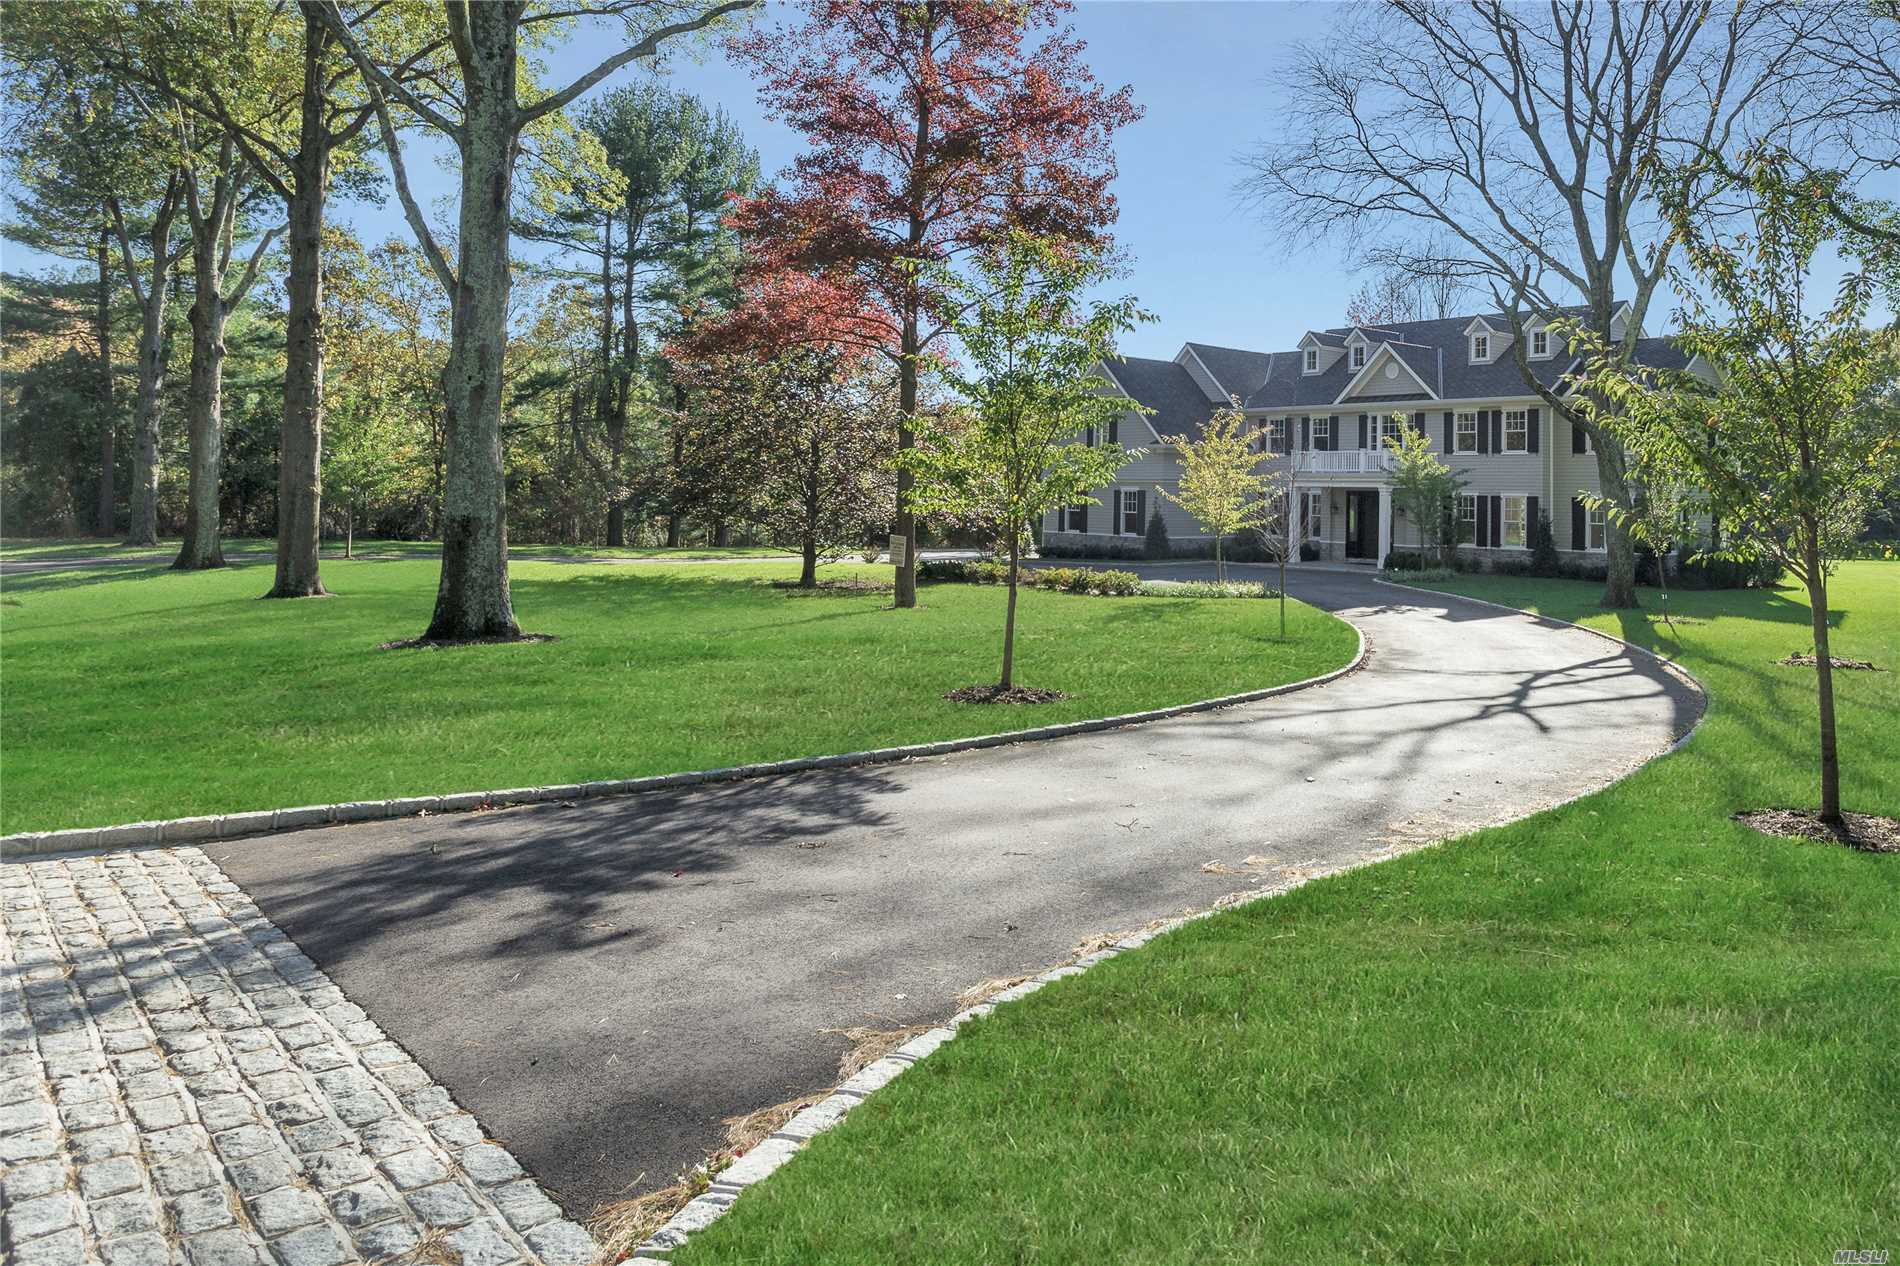 Old Westbury. Spectacular New Construction Gem In The Heart Of Old Westbury. This Stately 6-Bedroom, 5.5-Bath Home Is Set On Over 2 Flat Beautiful Acres Of Landscaped Lawns. With Its Own Captivating Character, The Home Features An Open Layout With Lots Of Natural Light Shining Throughout, All High-End Appliances & Finishes Throughout, Guest Quarters, Eat In Kitchen With Butler Pantry And Plenty More!!